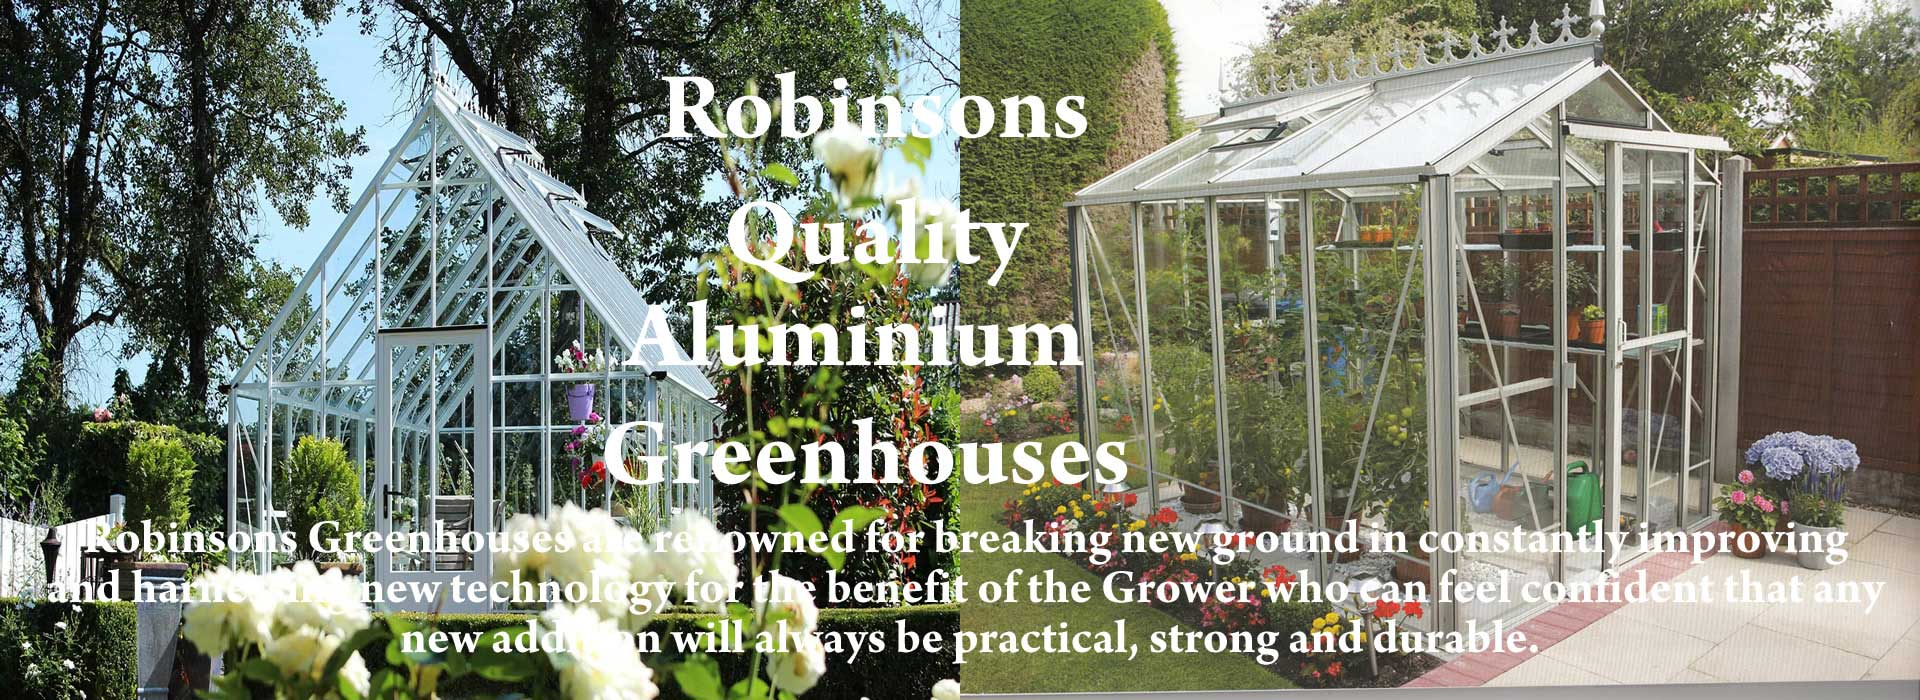 Robinsons Greenhouses Banner